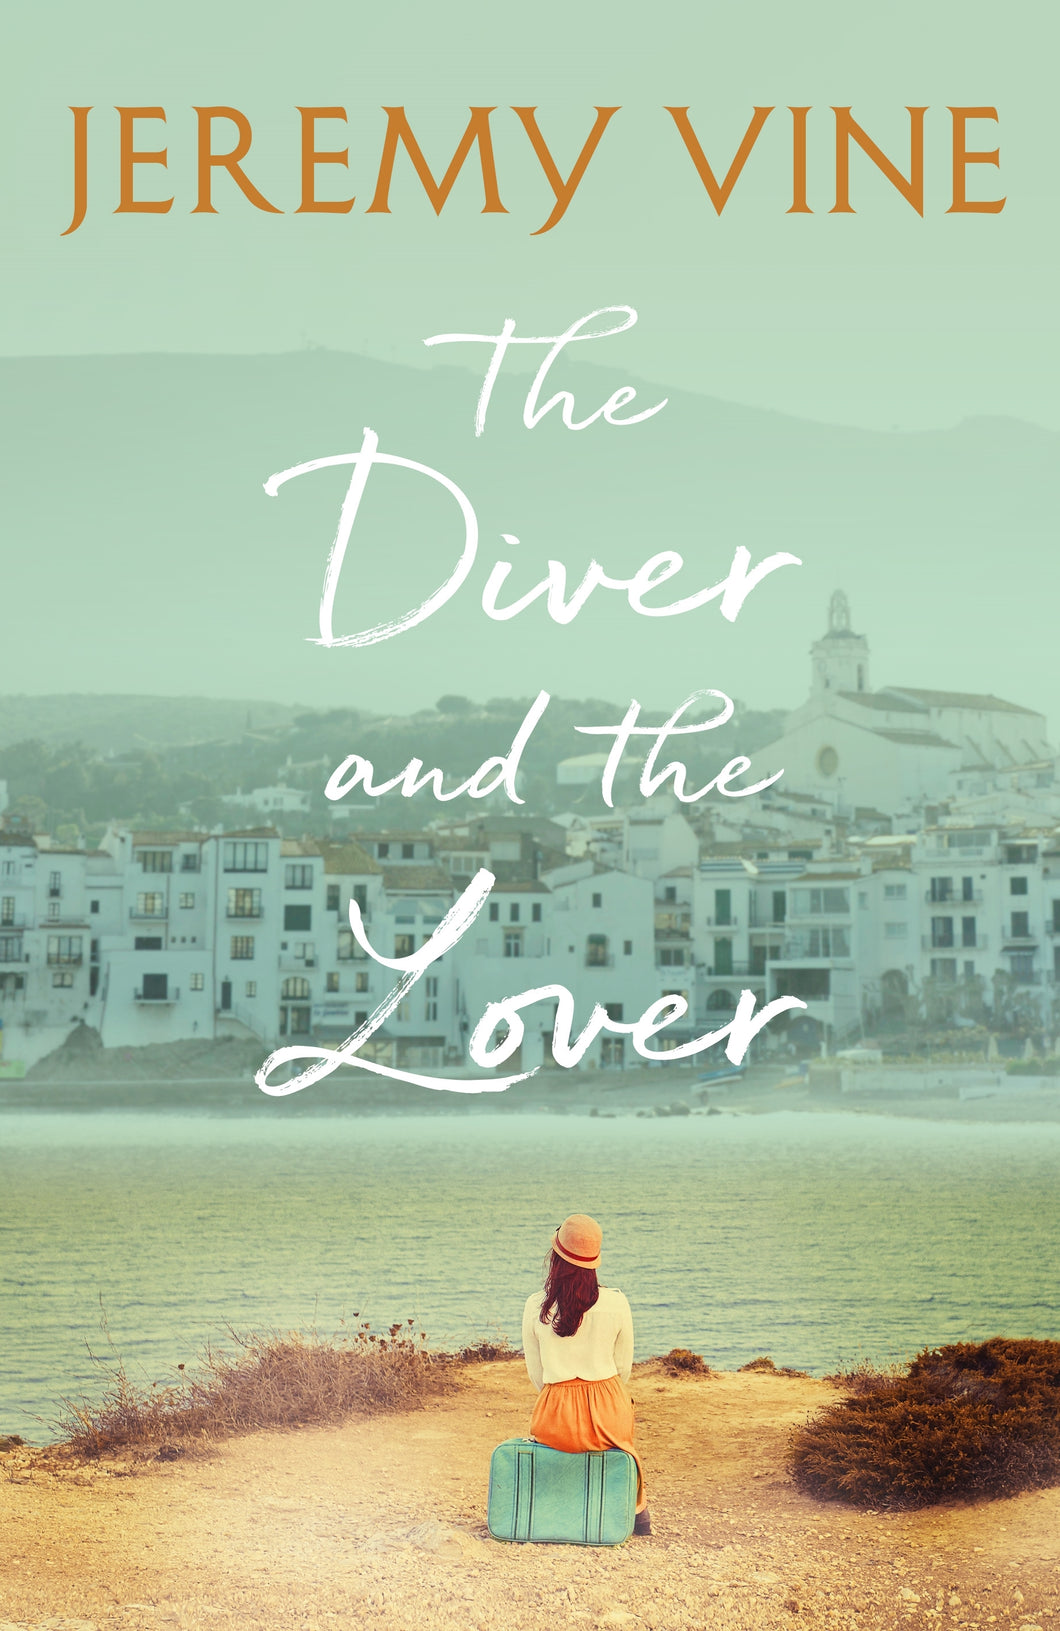 The Diver and The Lover (Hardback) - Jeremy Vine - SIGNED